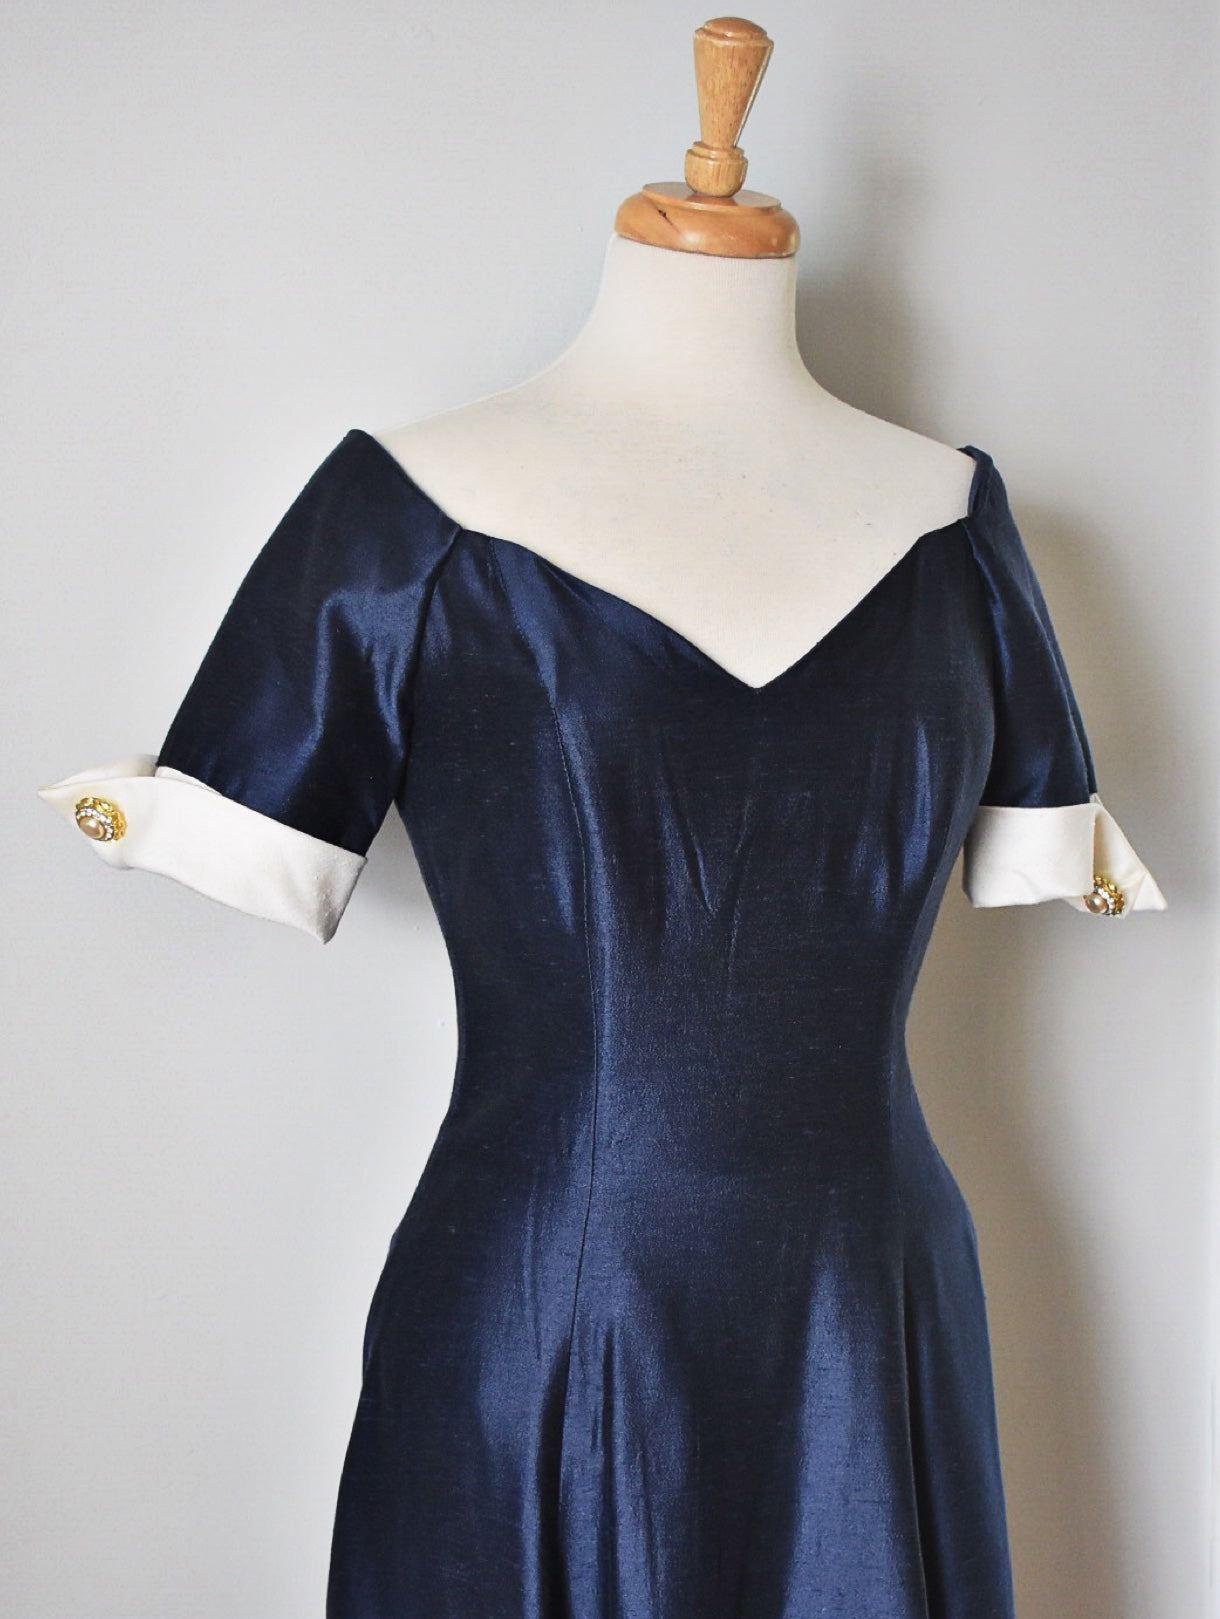 80s Vintage Blue and White Party Dress